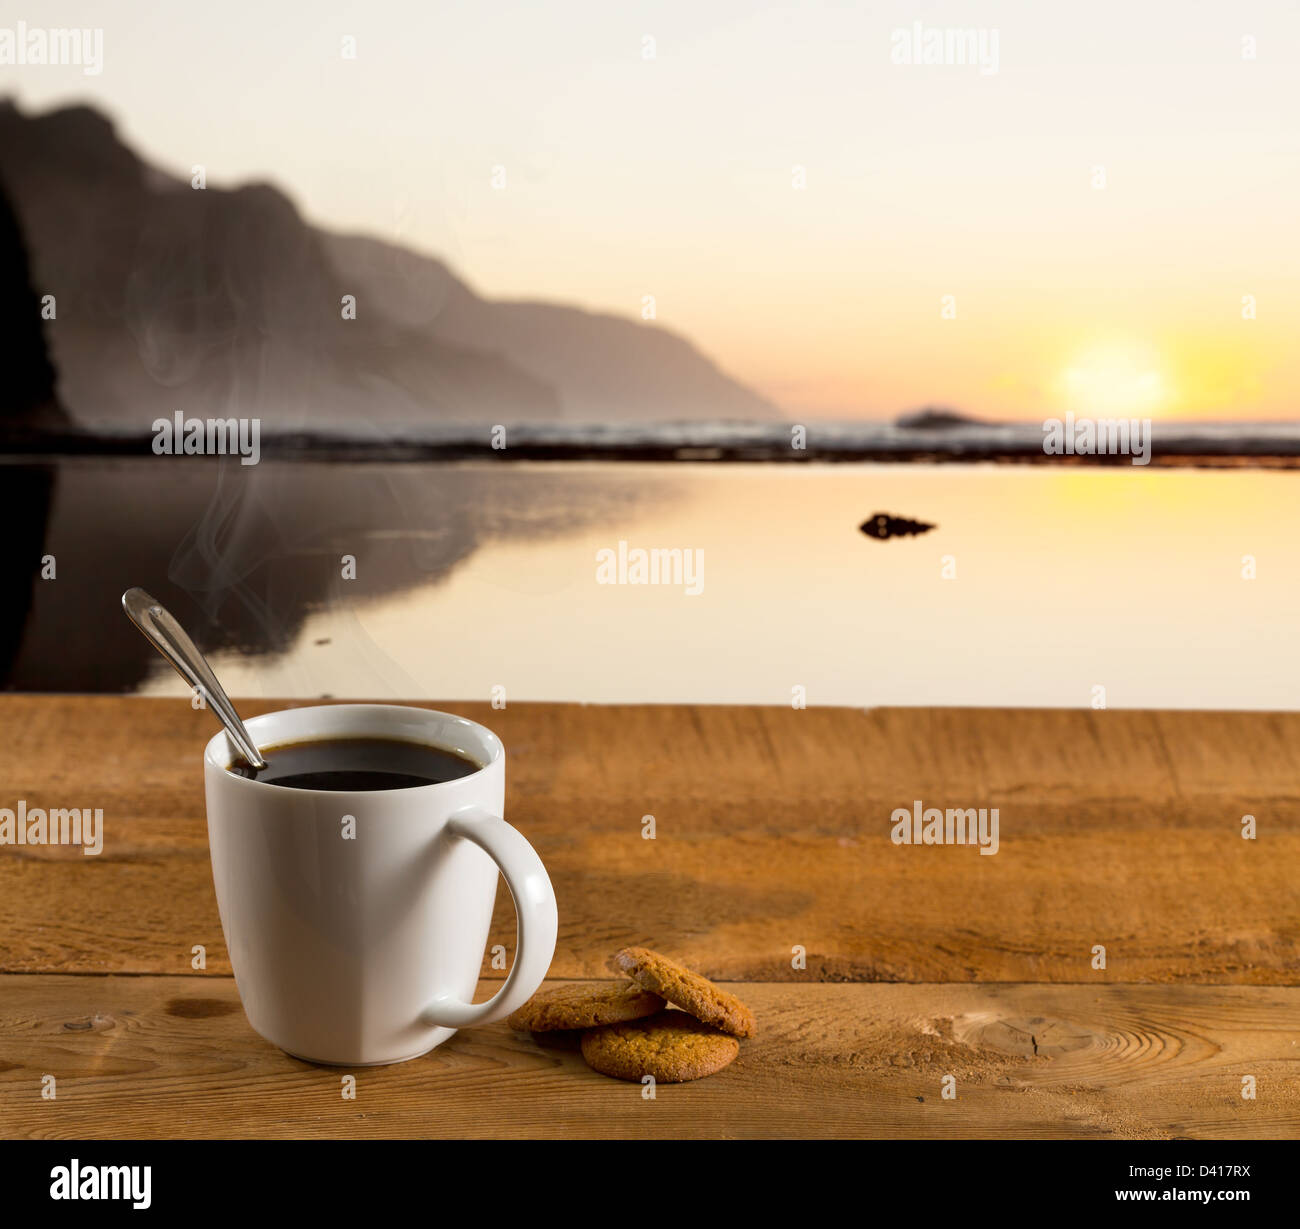 Cup of coffee on a table at sunset or sunrise overlooking a beautiful landscape view - Stock Image